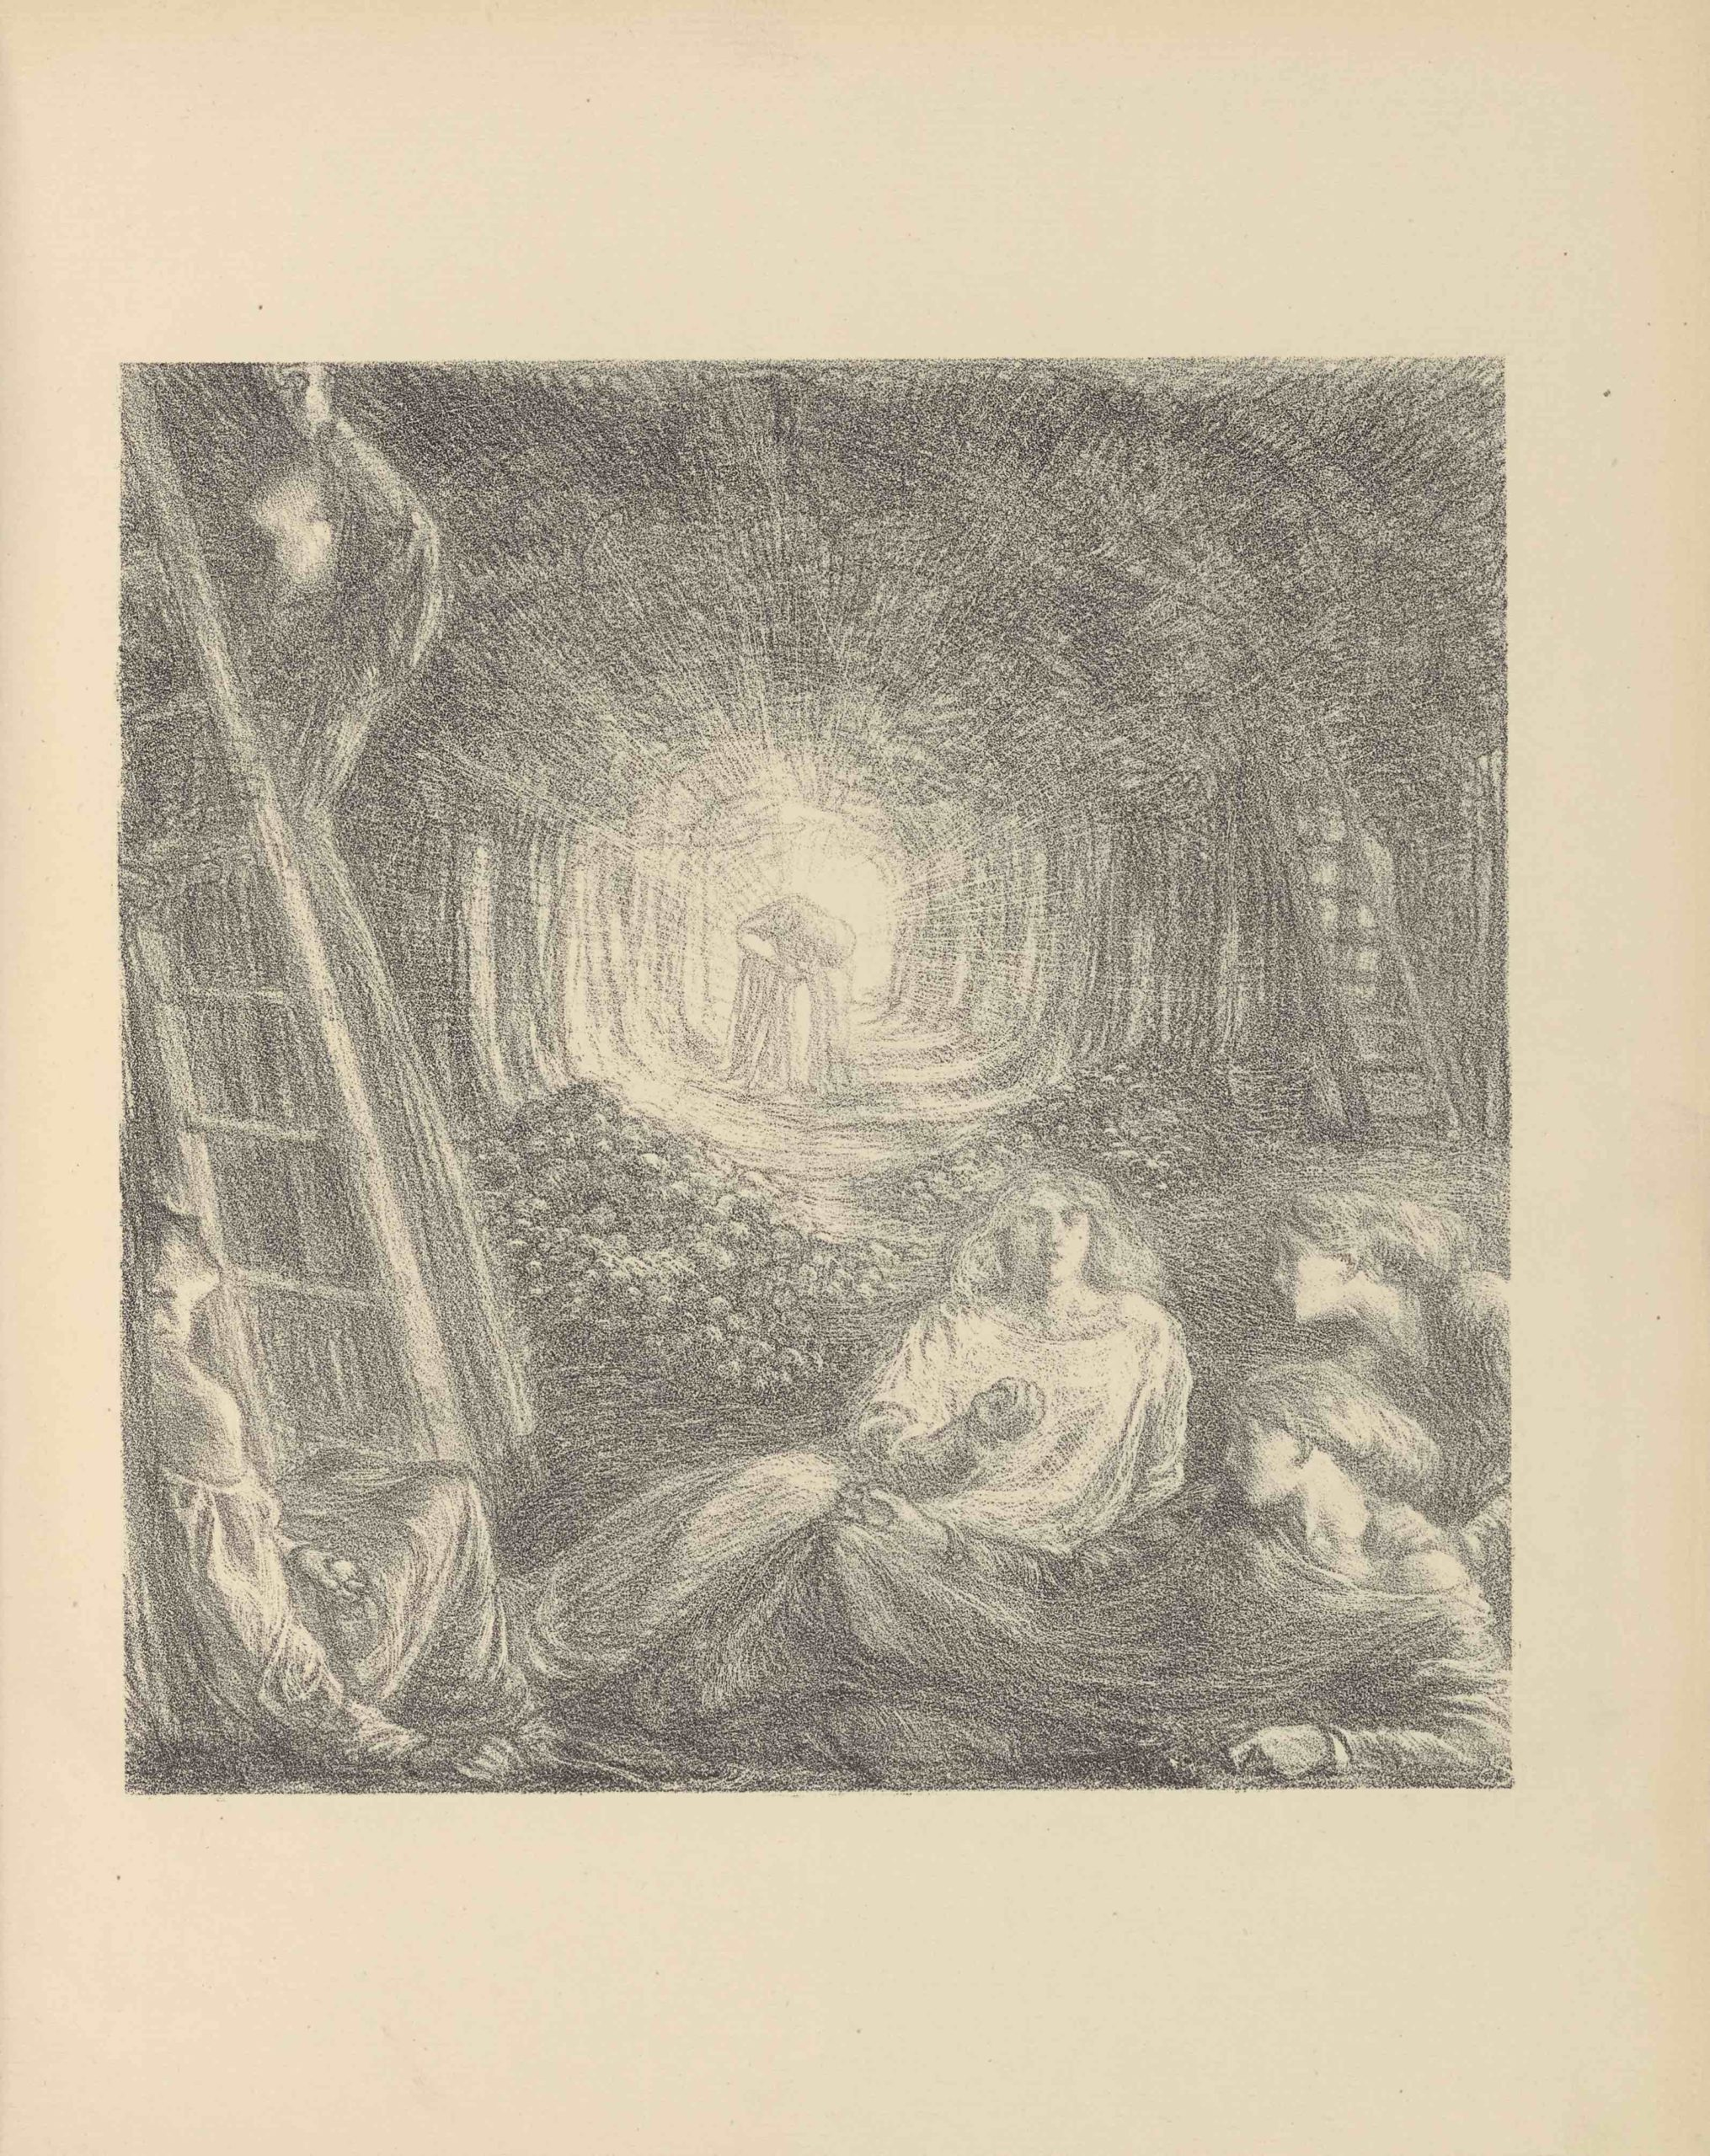 The lithographic image is set into a square on the centre of the page. The image, printed in soft grey tones,                          depicts a scene of apple gatherers in an orchard. In the foreground of the image four women recline in supine postures,                          two of them holding apples. The woman in the centre foreground is looking at the viewer, while the others are in                          profile. On the left, just behind the supine women, a woman stands on a ladder reaching up to pluck a fruit that is out                          of view above the picture plane. Behind the group of figures are piles of apples on the ground. In the centre of the                          image, dominating the middle-ground. In the background, illuminated in the centre of the orchard, is a pair embracing.                          They are in silhouette, surrounded by trees, and from behind them originates a burst of light that extends out towards                          the viewer, creating a tunnel of light between the rows of trees.